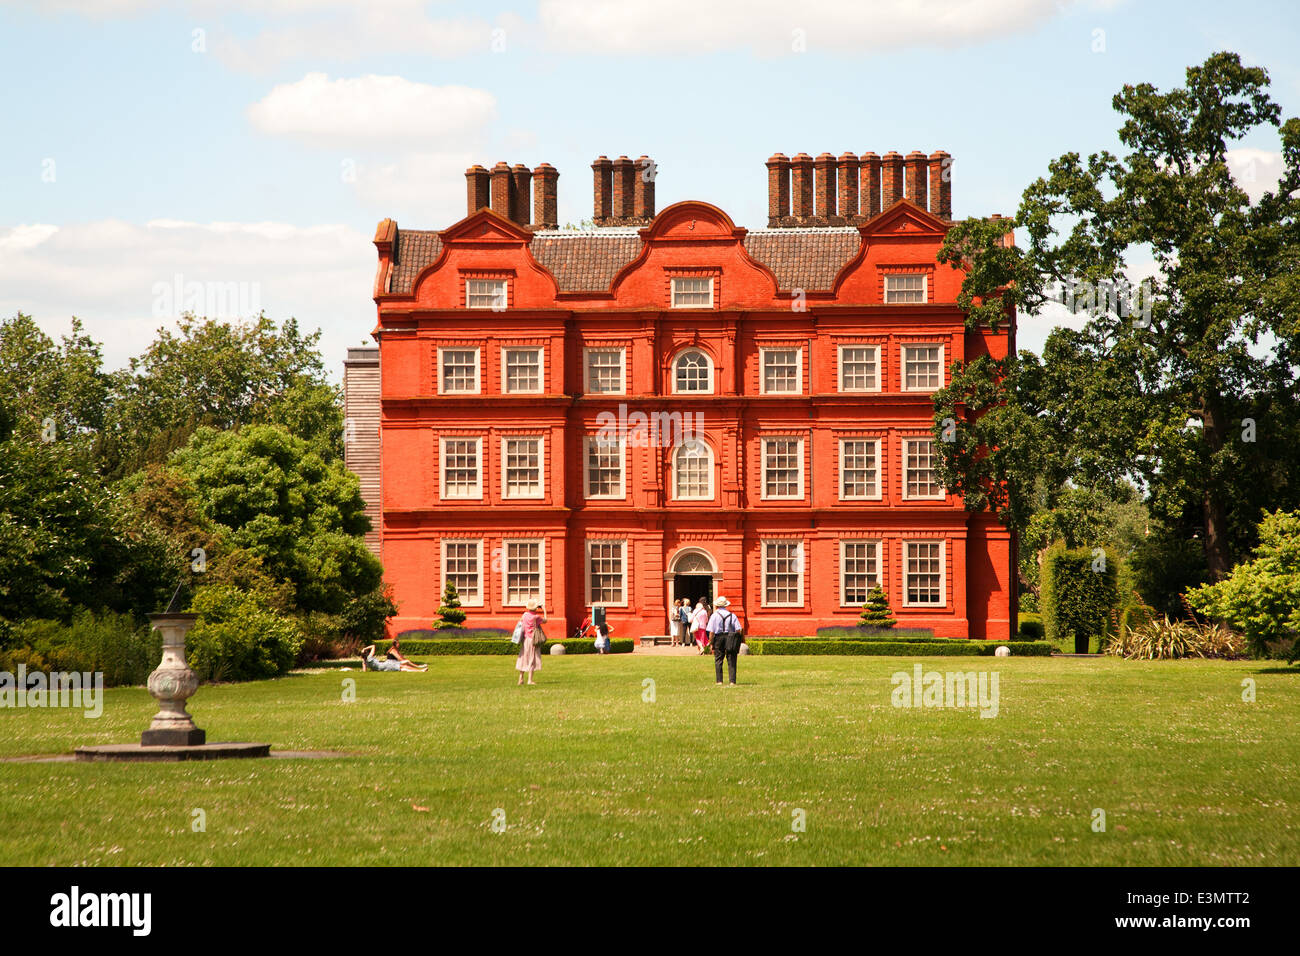 Kew Palace in Kew Royal Botanic Garden,London,UK Stock Photo